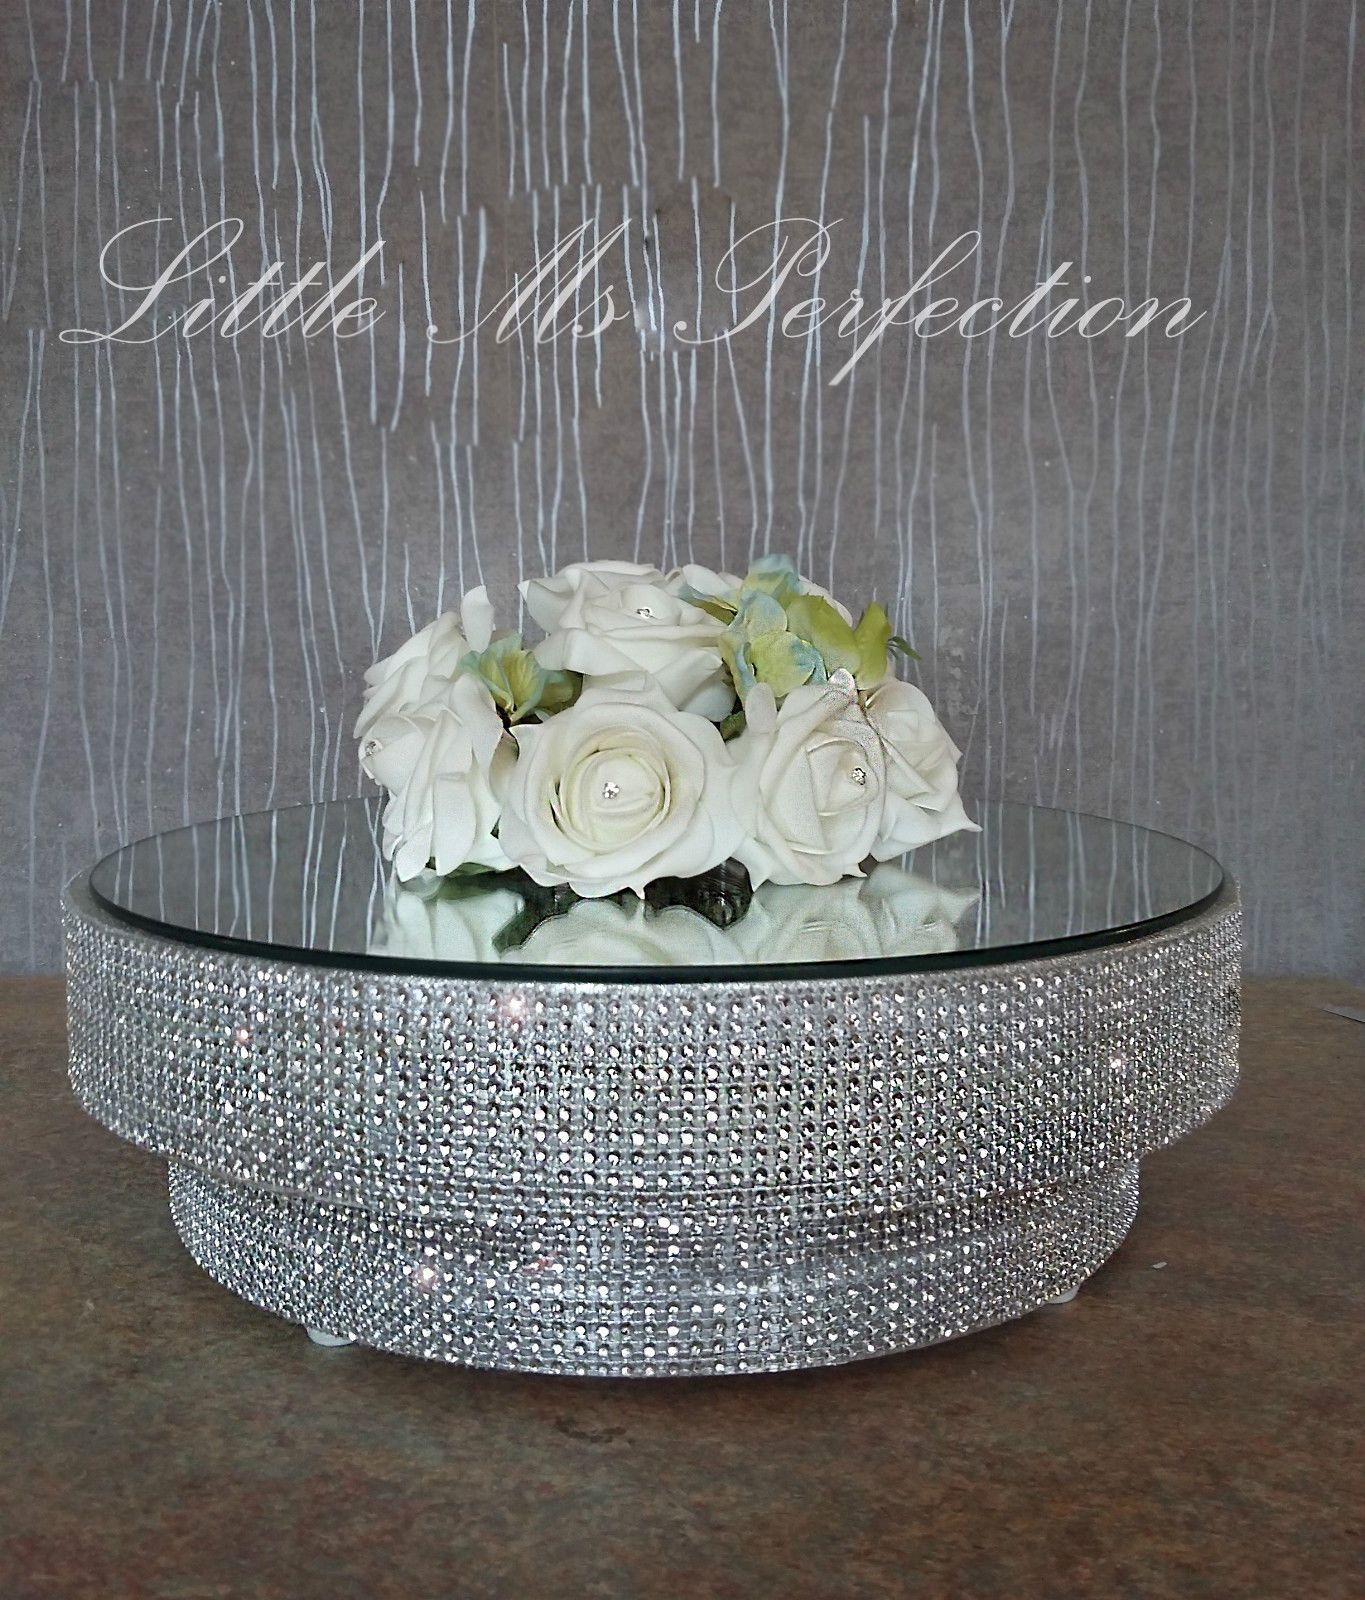 Large diamante crystal wedding cake stand display podium silver gold